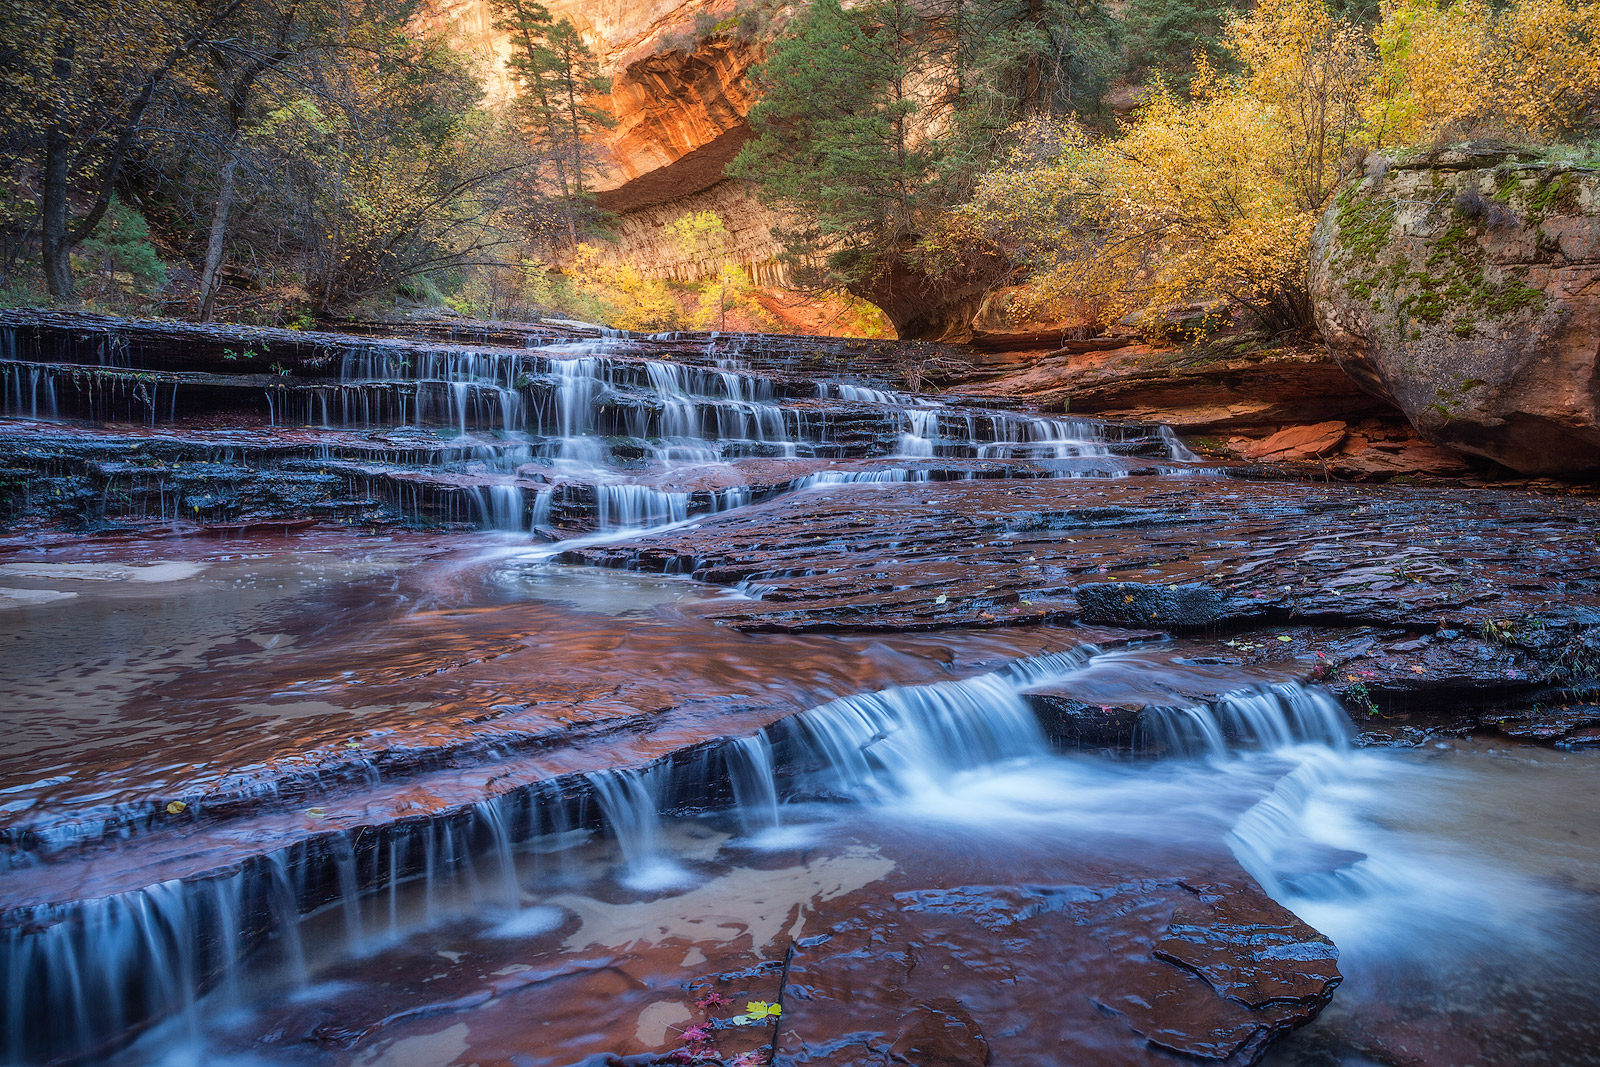 fall, landscape, leaf, leaves, maple, north america, river, southwest, stream, the subway, trees, united states, utah, water body, waterfall, zion national park, photo